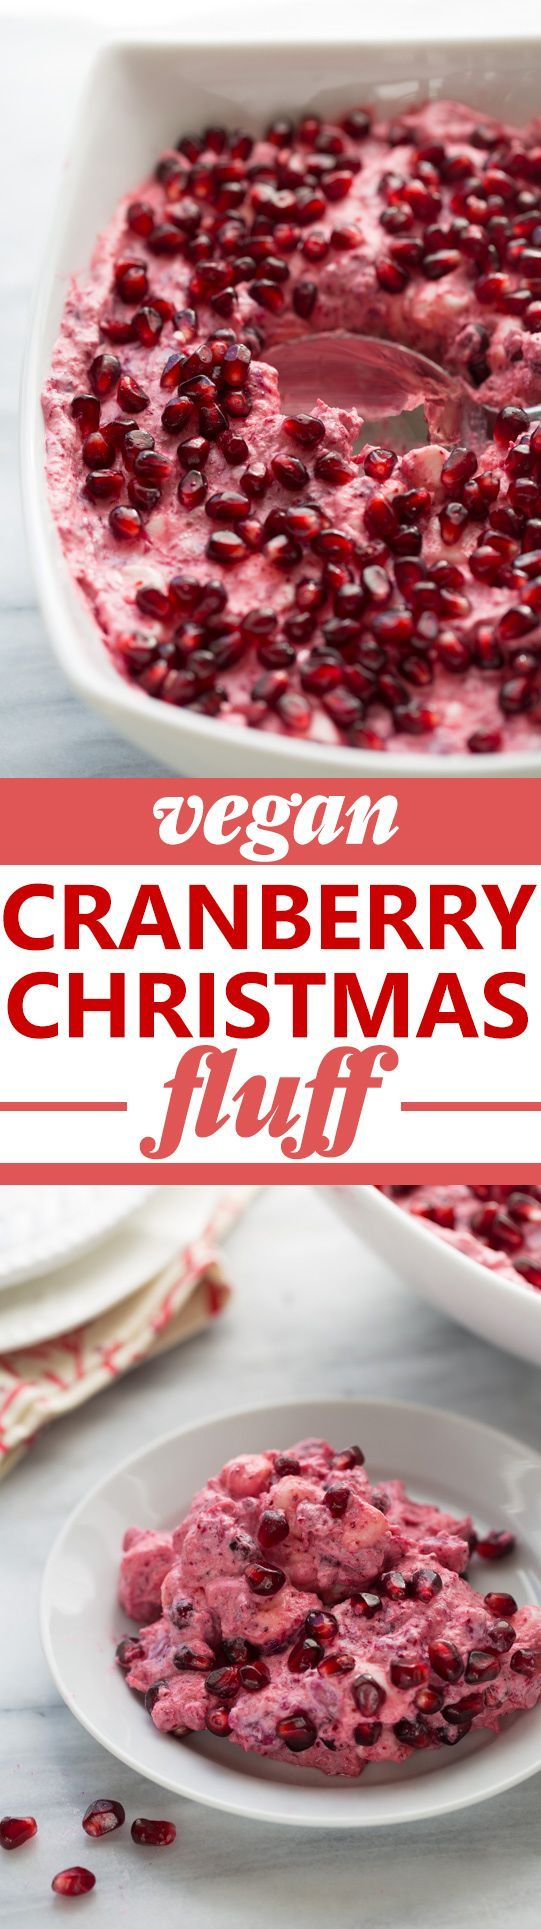 Vegan Christmas Cranberry Fluff! This gluten-free/dairy-free side will steal the show at any holiday gathering!